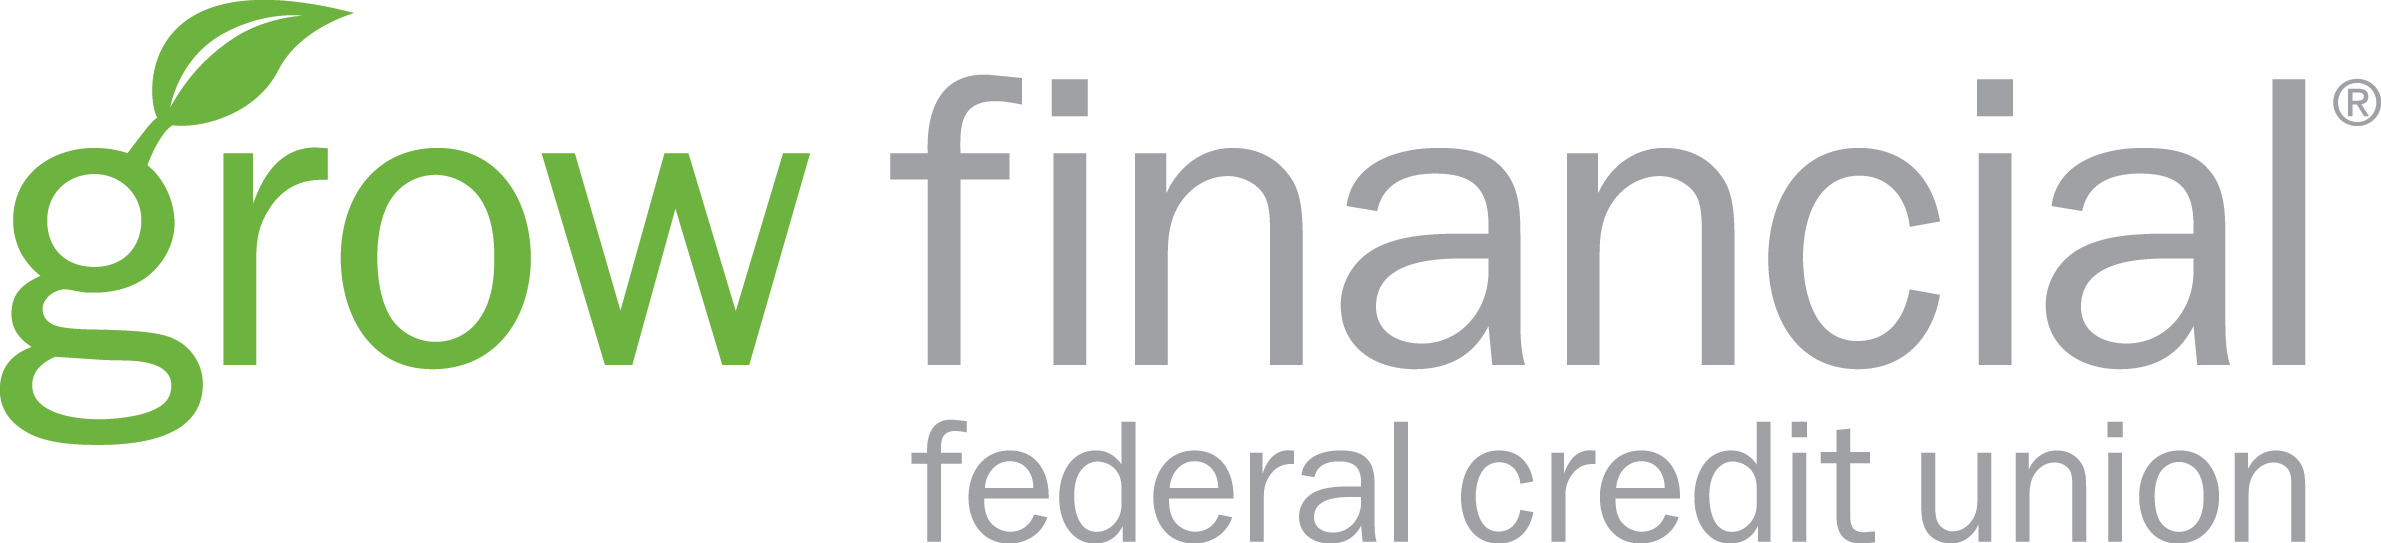 Grow Financial logo